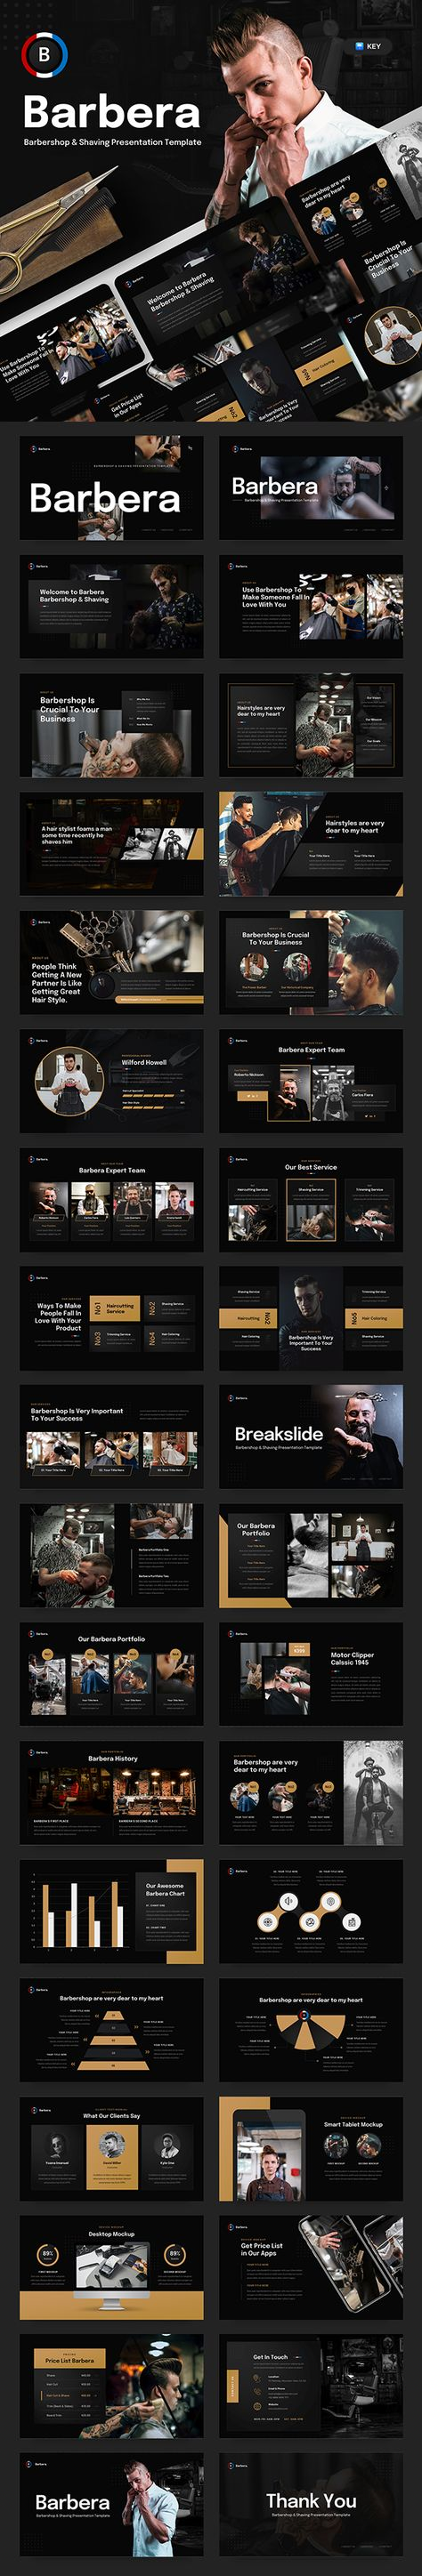 Barbera - Barbershop & Shaving Keynote Presentation Template